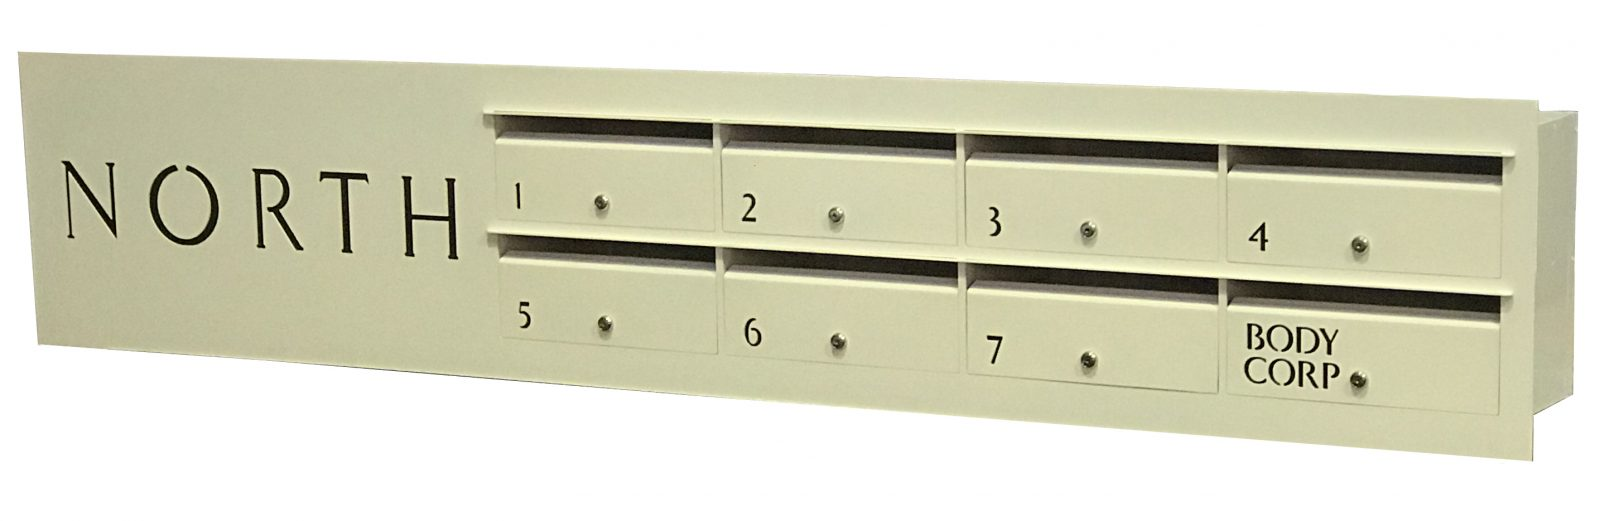 letterboxe for unit with 3mm alum face